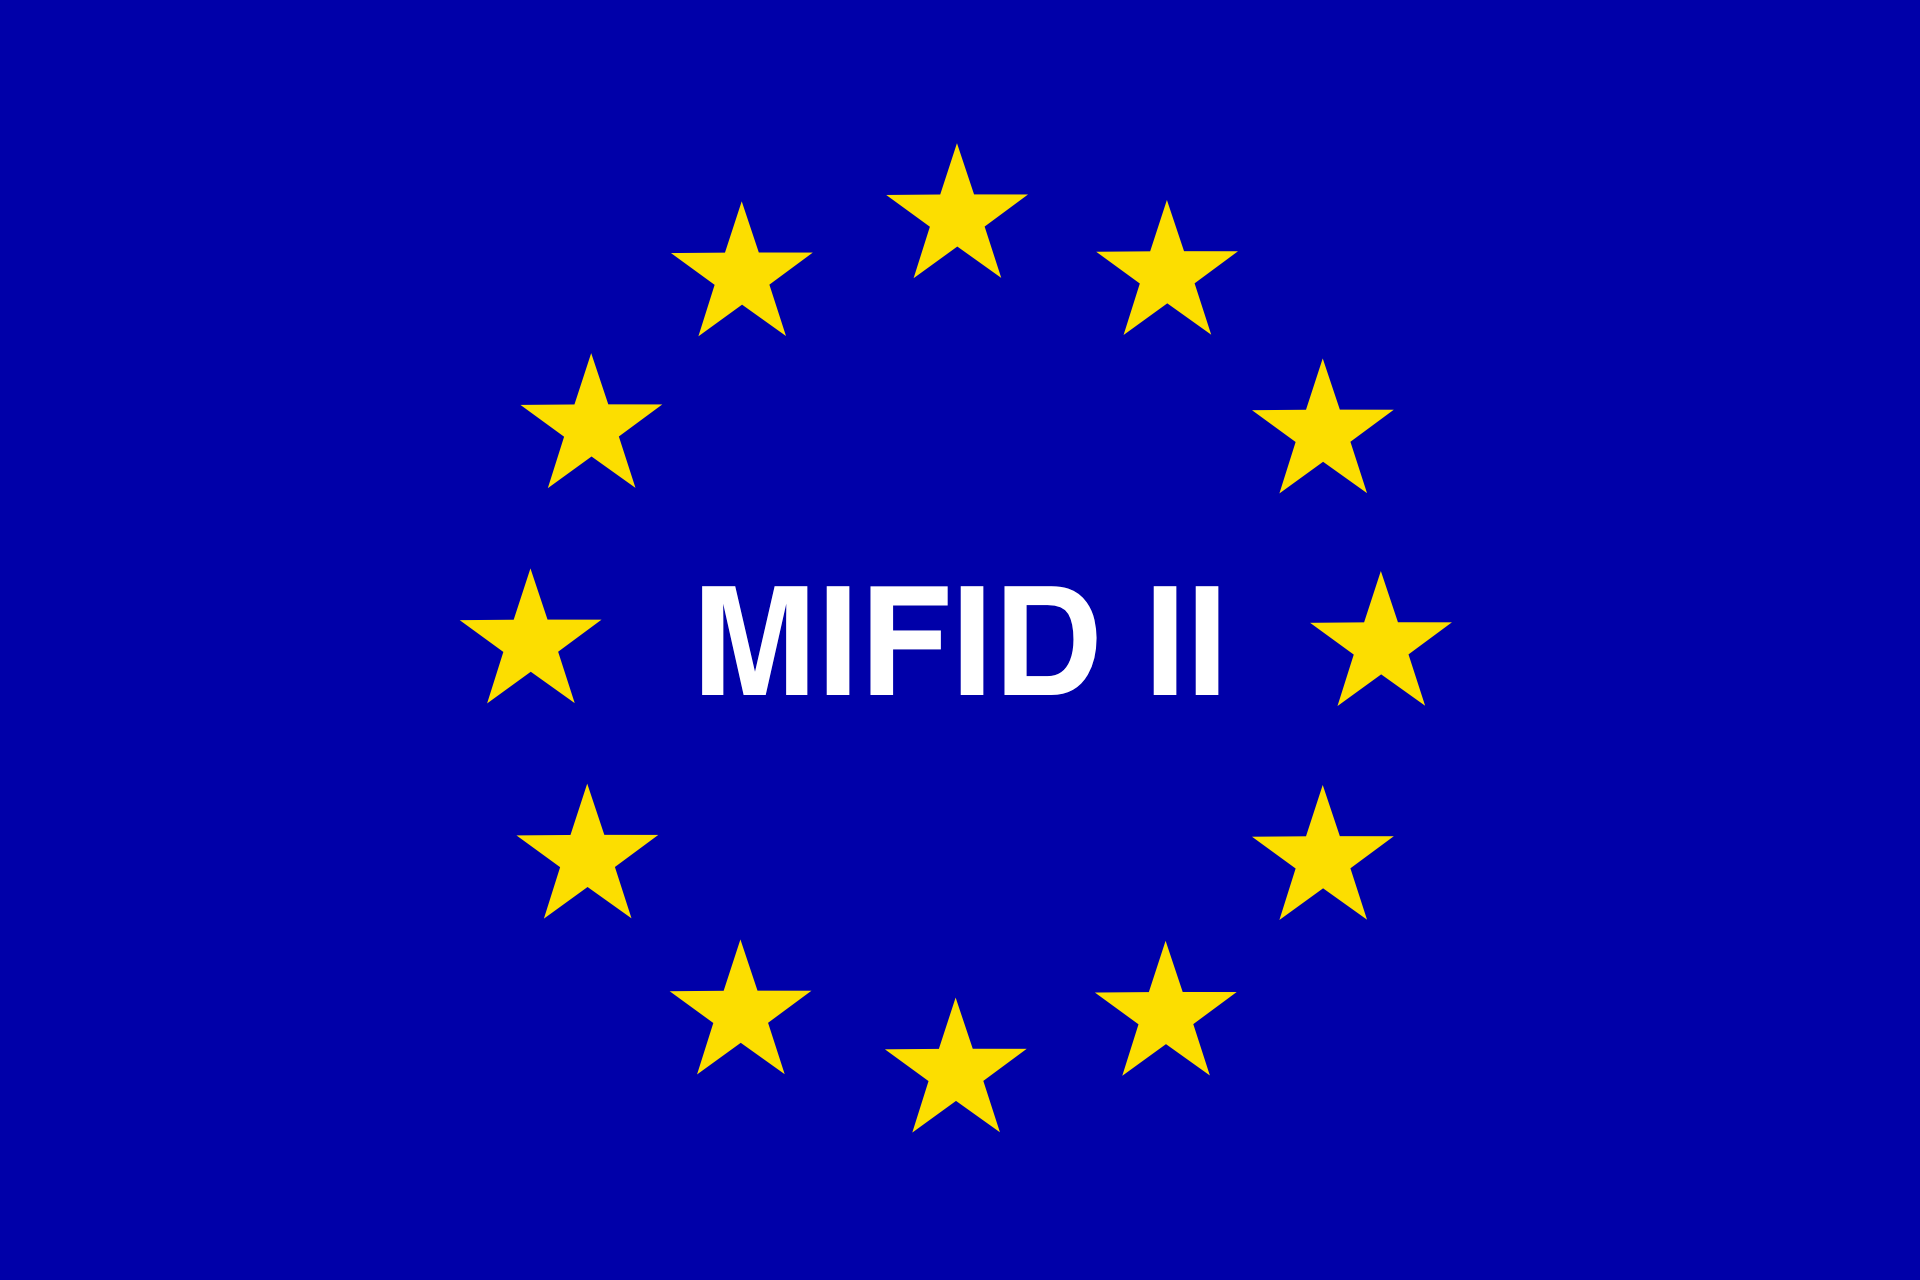 eu flag bright blue_Mifid 2.png